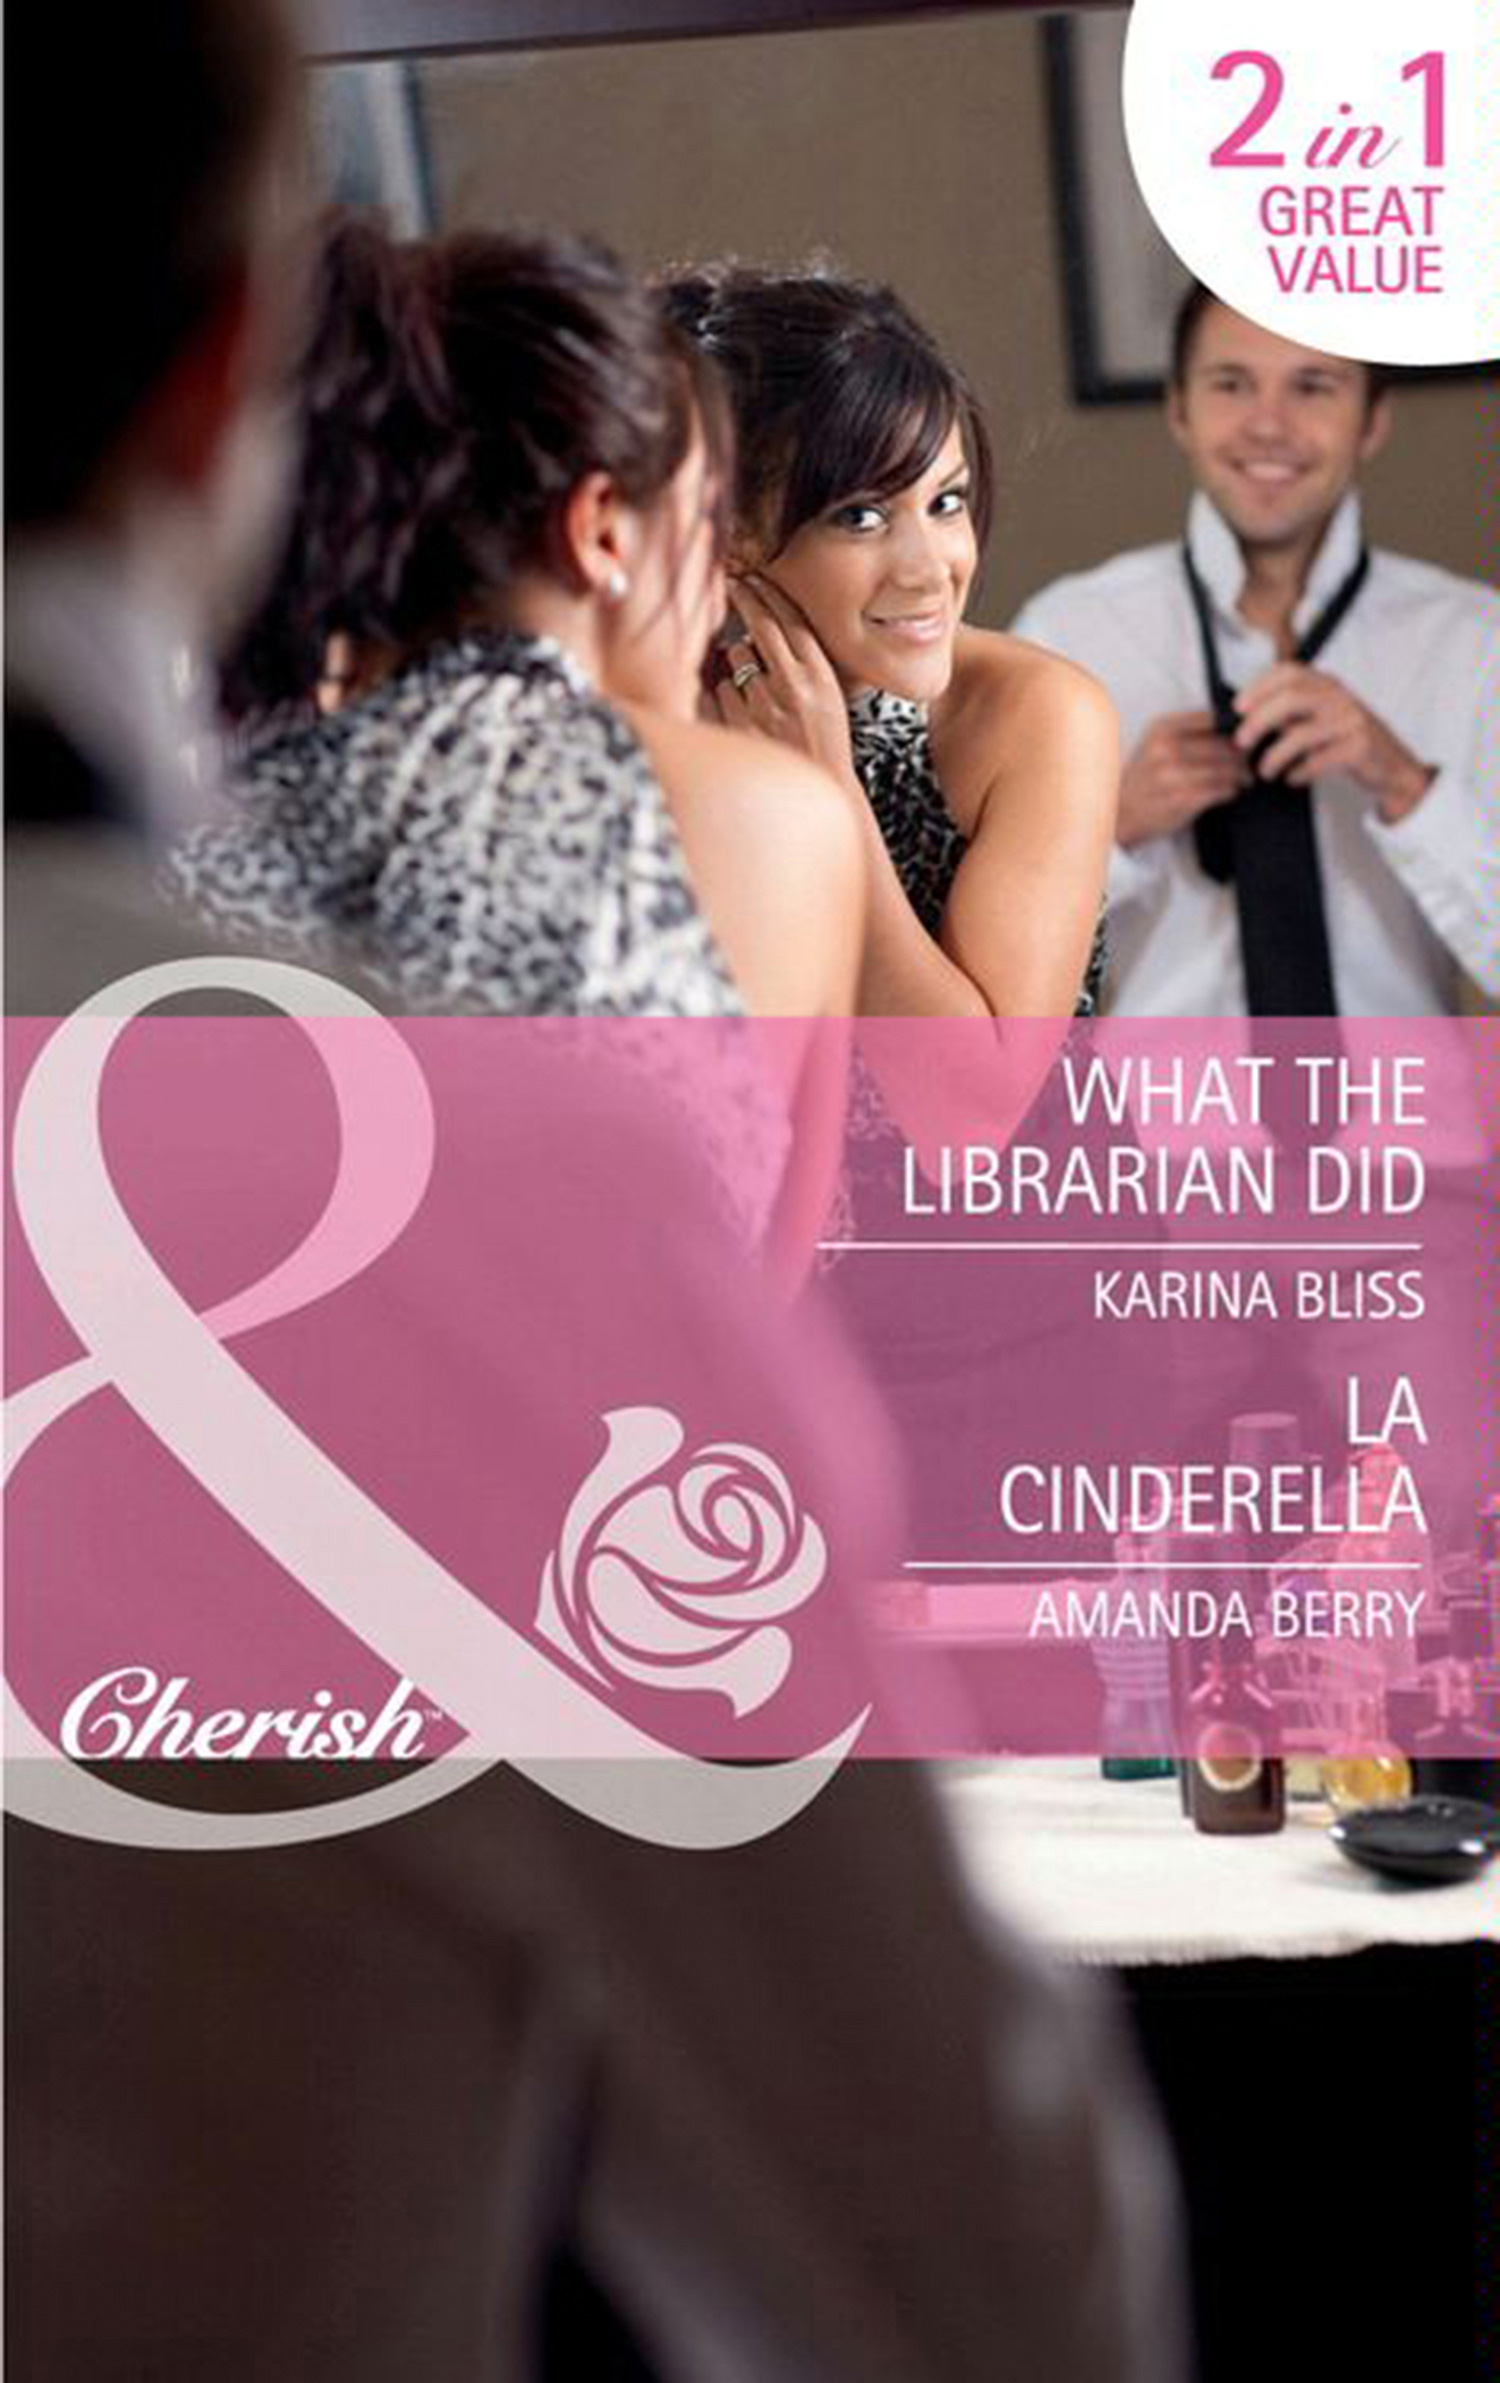 What the Librarian Did / LA Cinderella